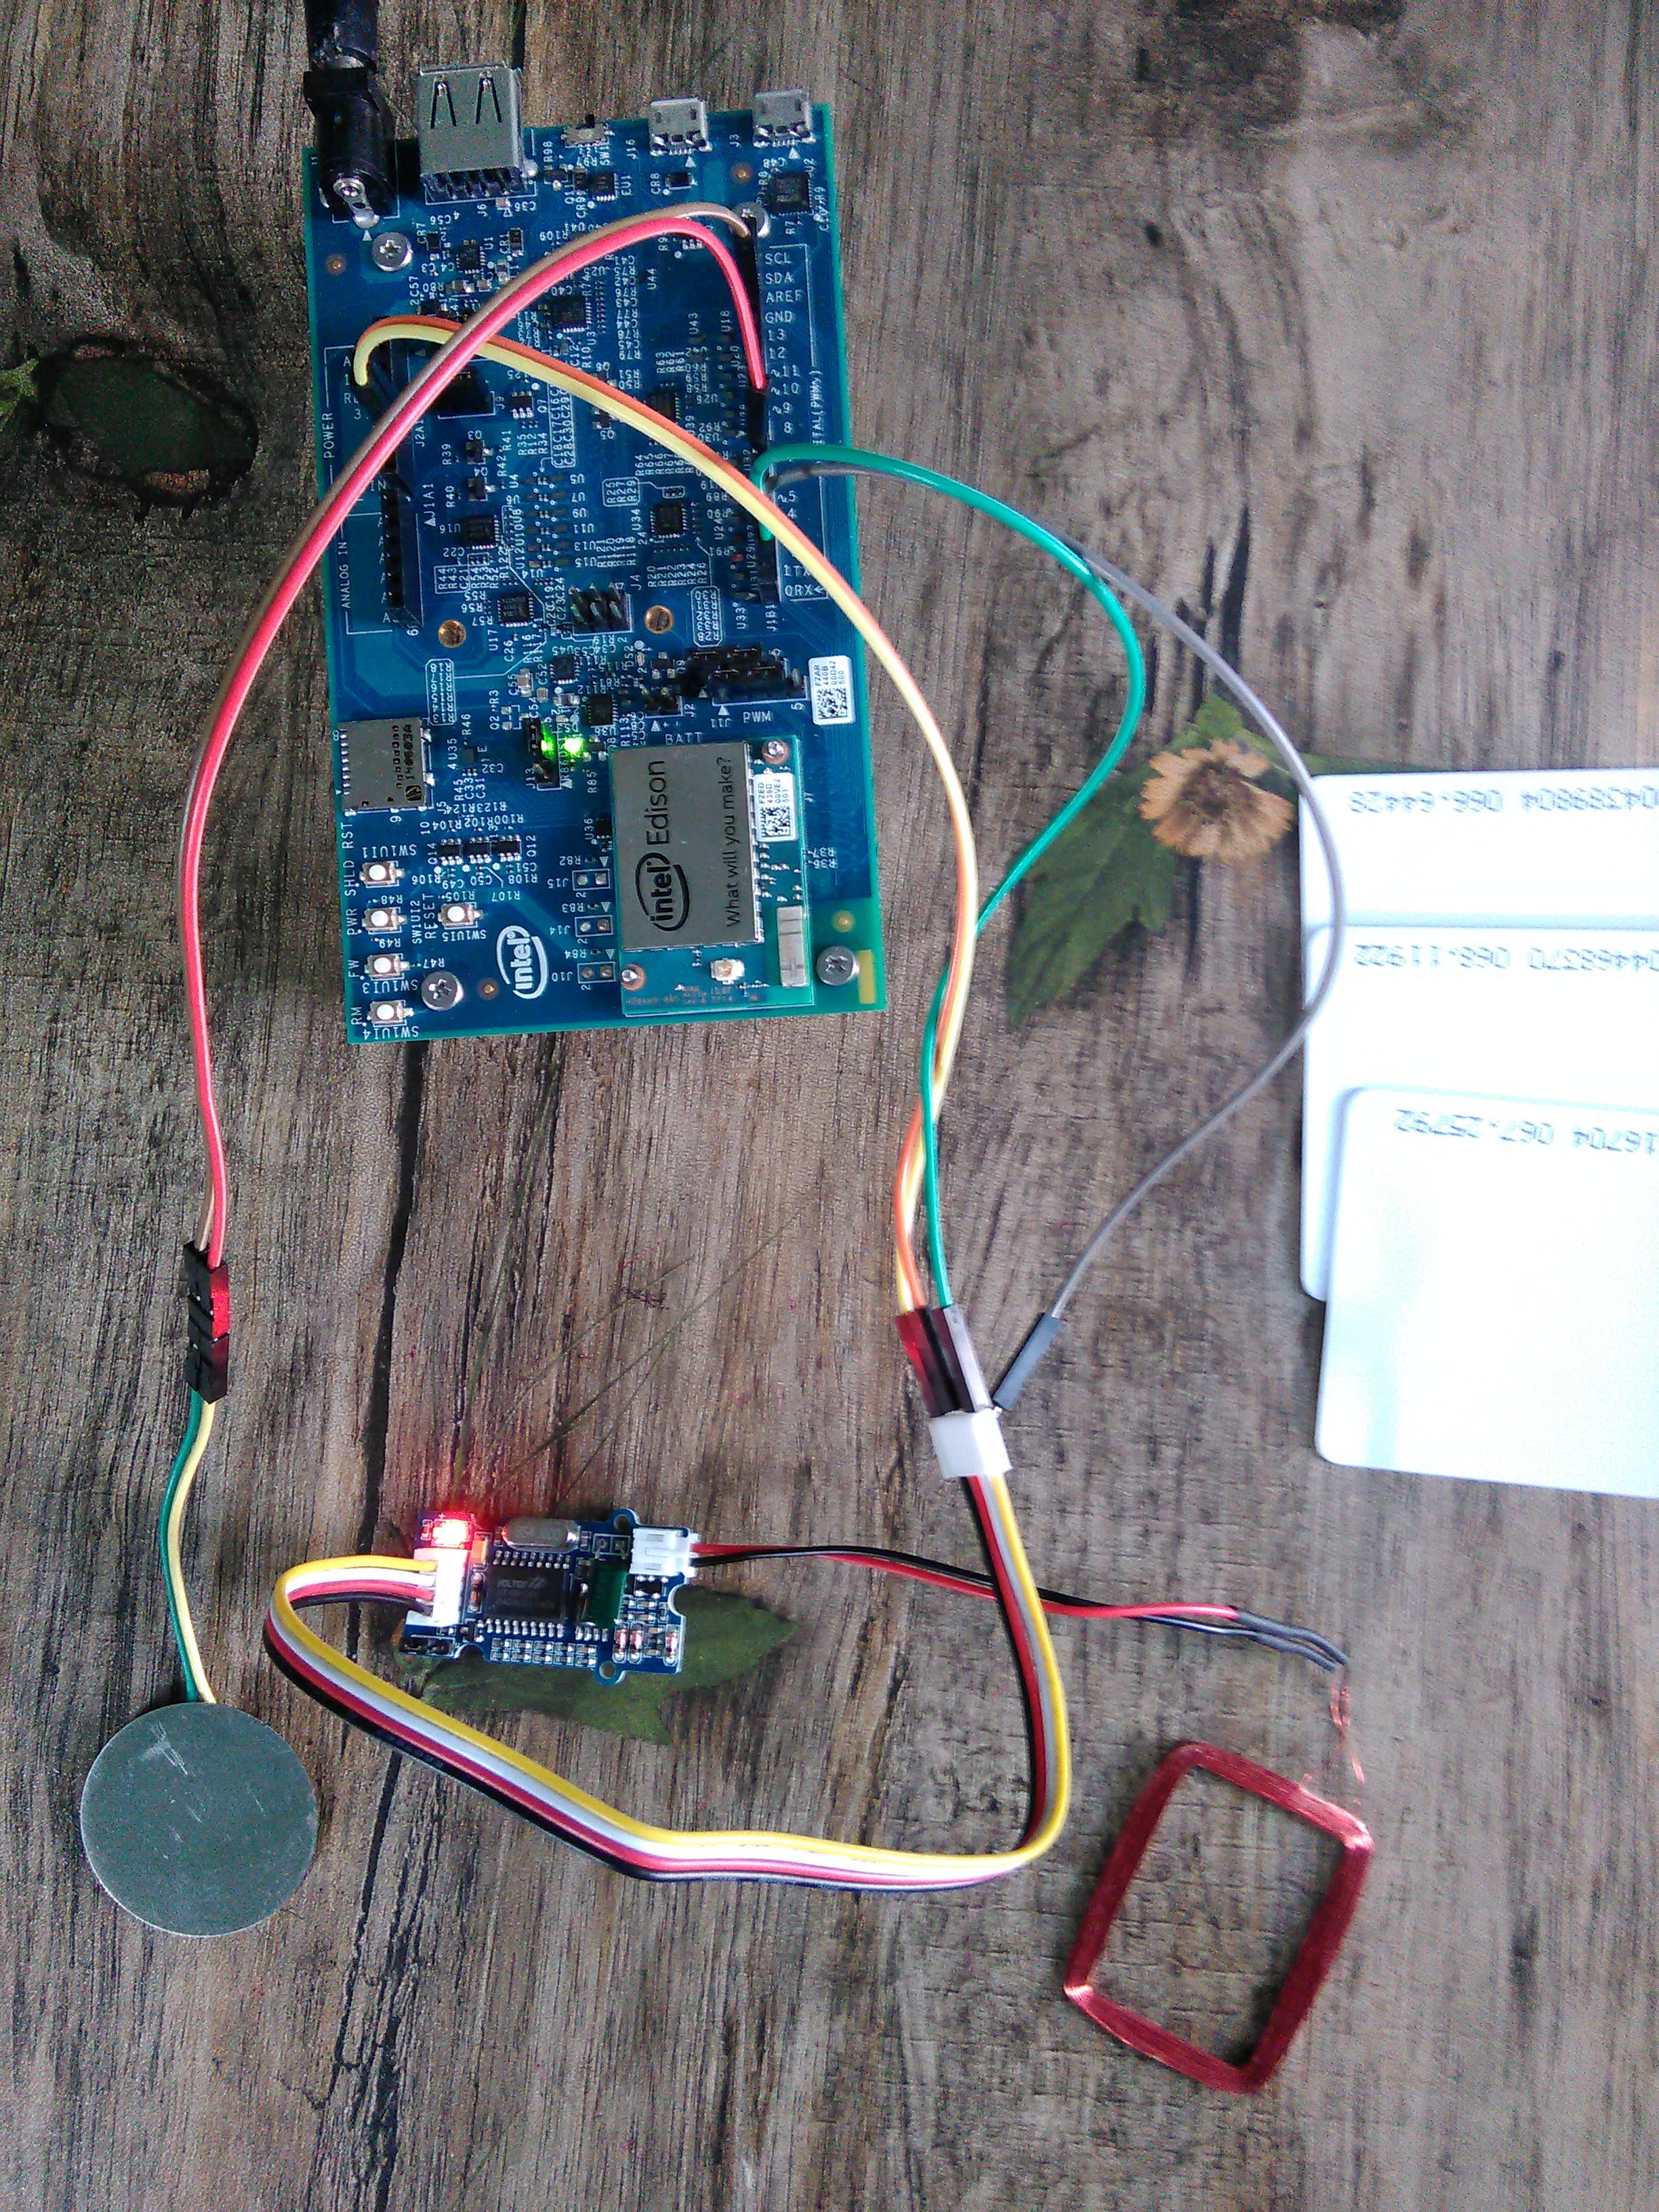 Smart Attendance System (Intel Edison Inside)